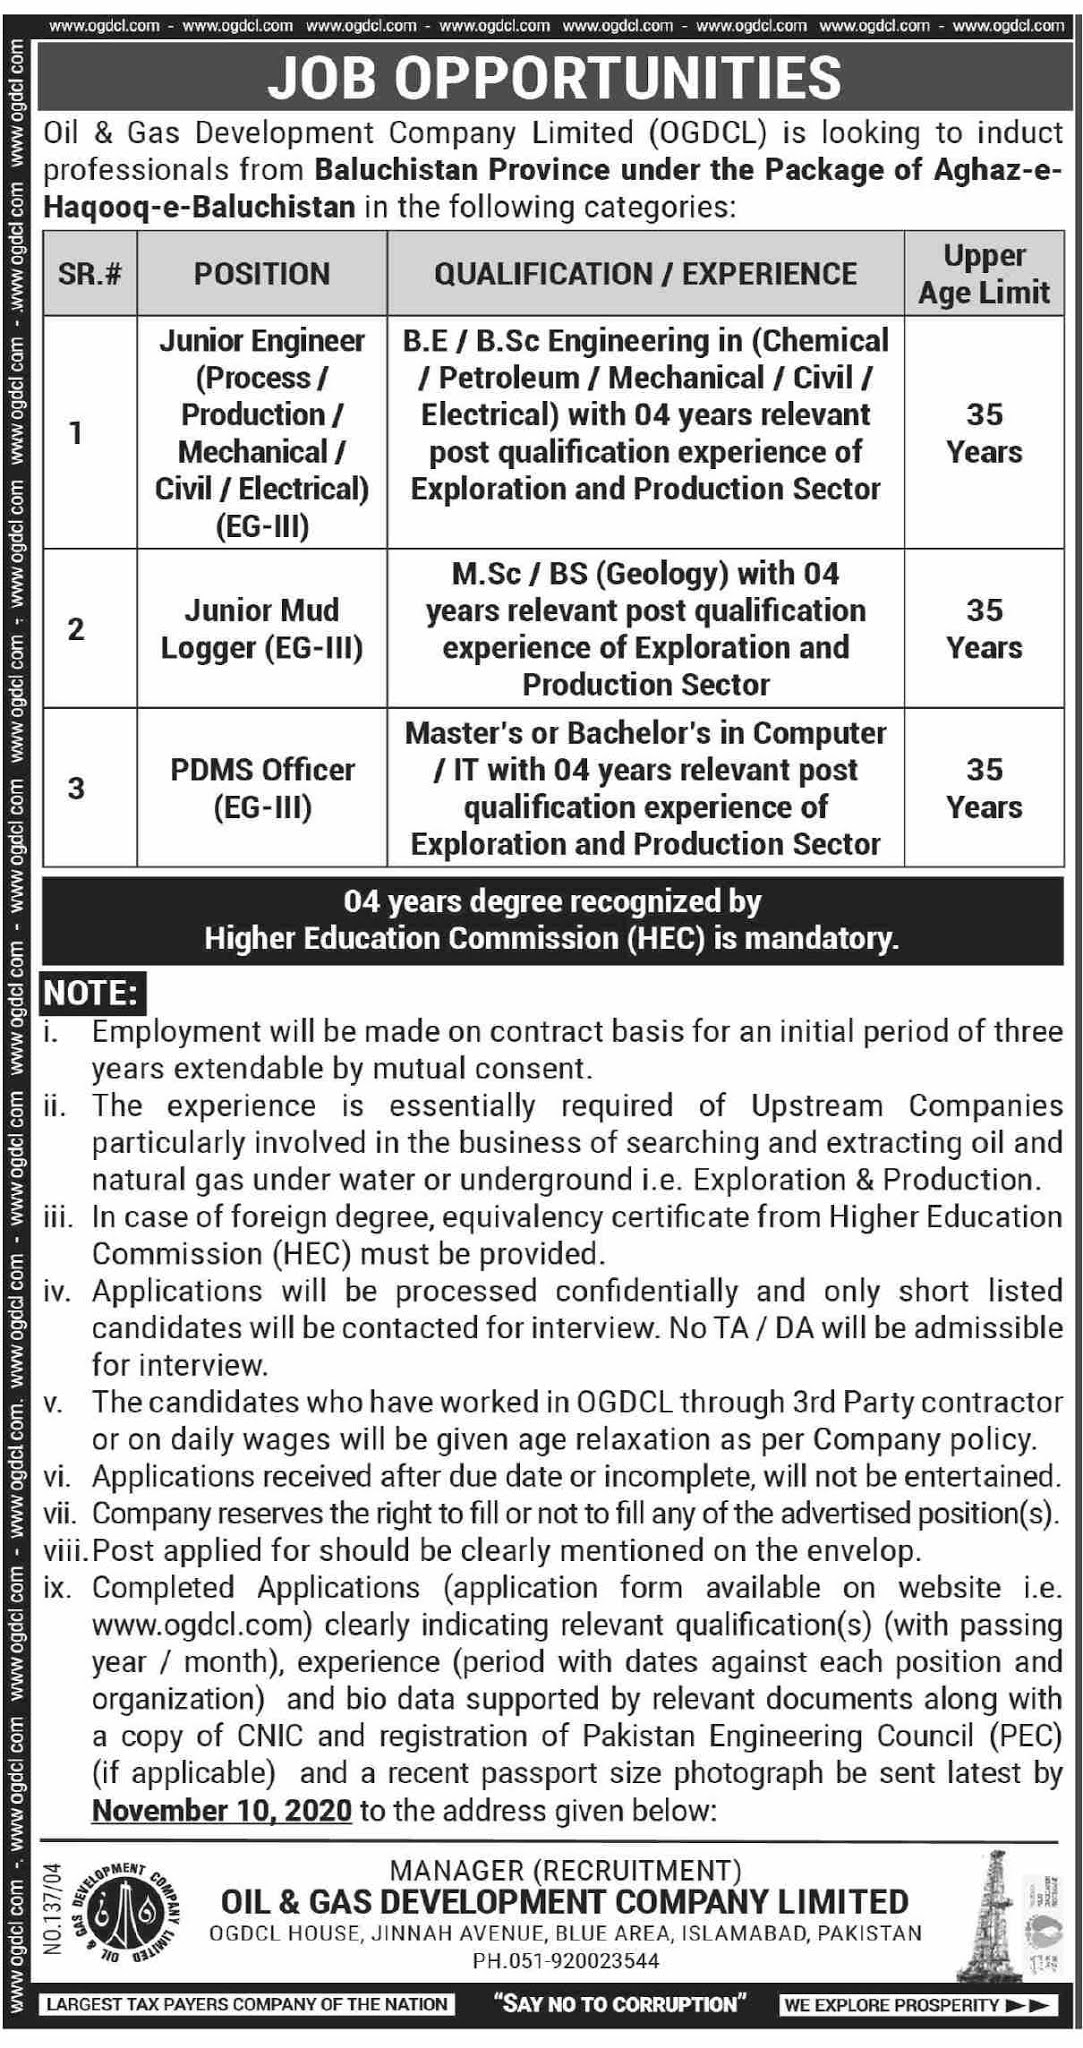 Oil And Gas Development Company Limited OGDCL Jobs in Pakistan 2020-2021 - Download Application Form - Apply Online - www.ogdcl.com